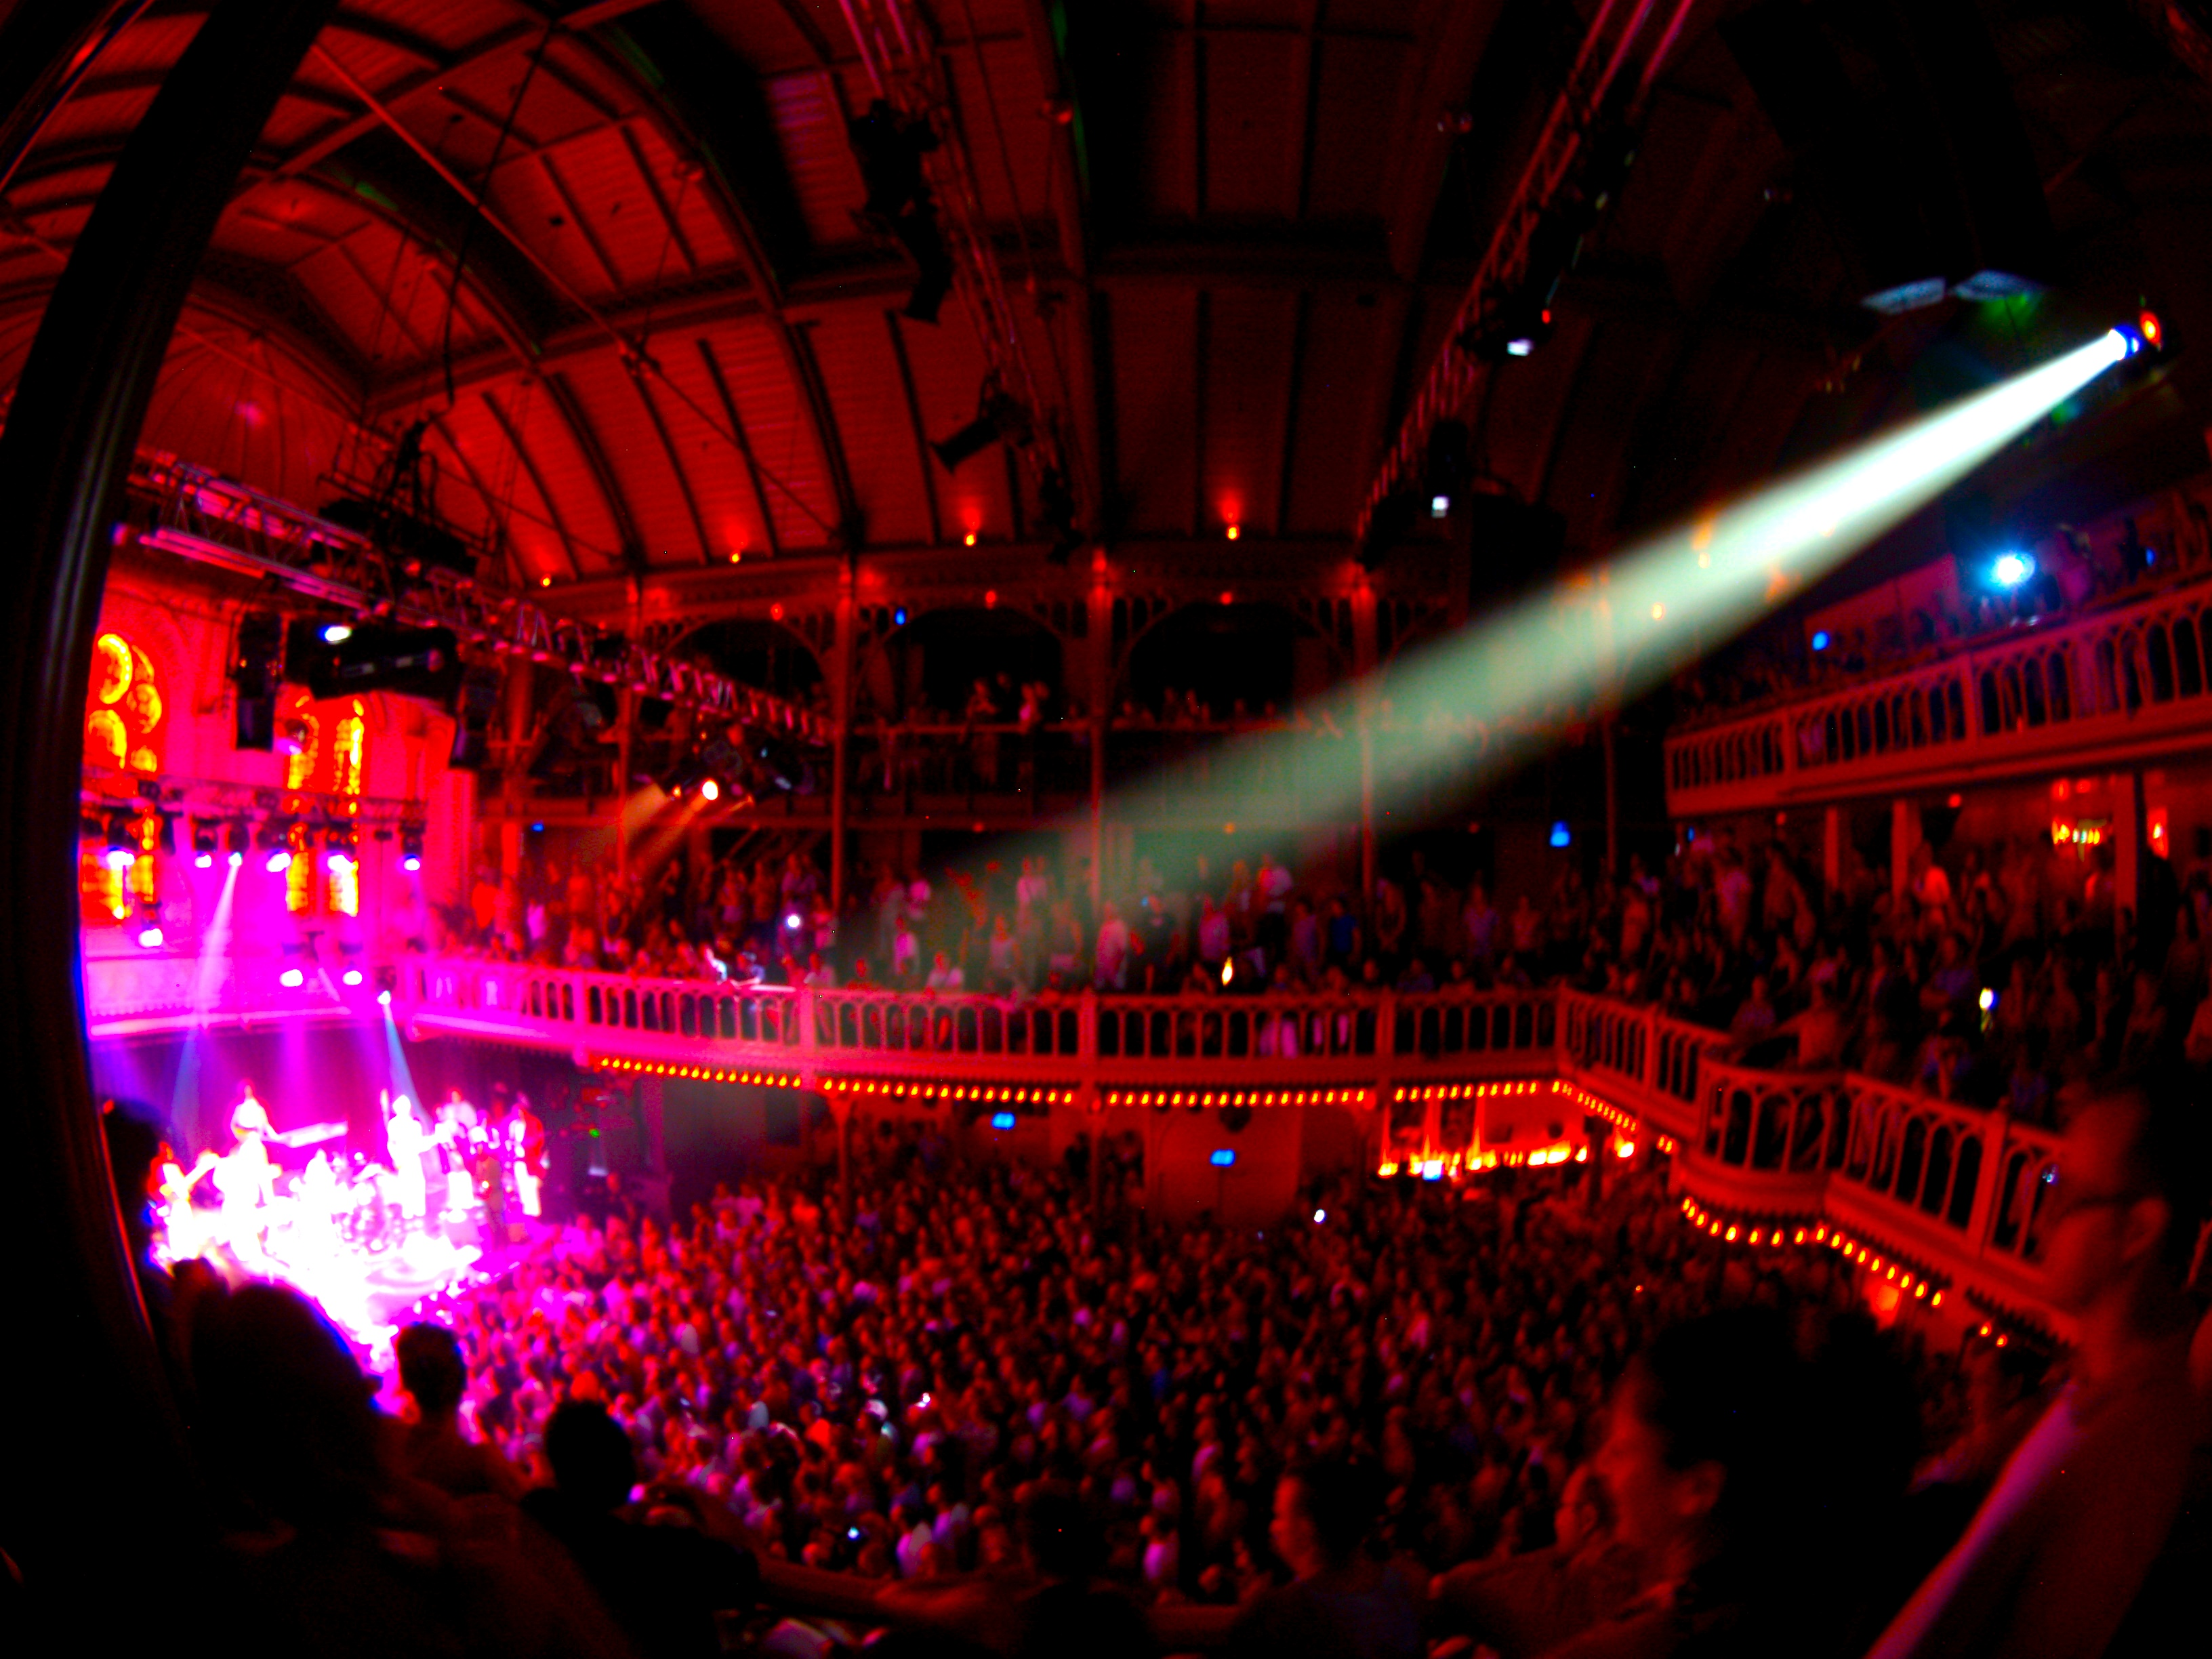 https://upload.wikimedia.org/wikipedia/commons/1/17/James_Brown_@_Paradiso,_Amsterdam.jpg